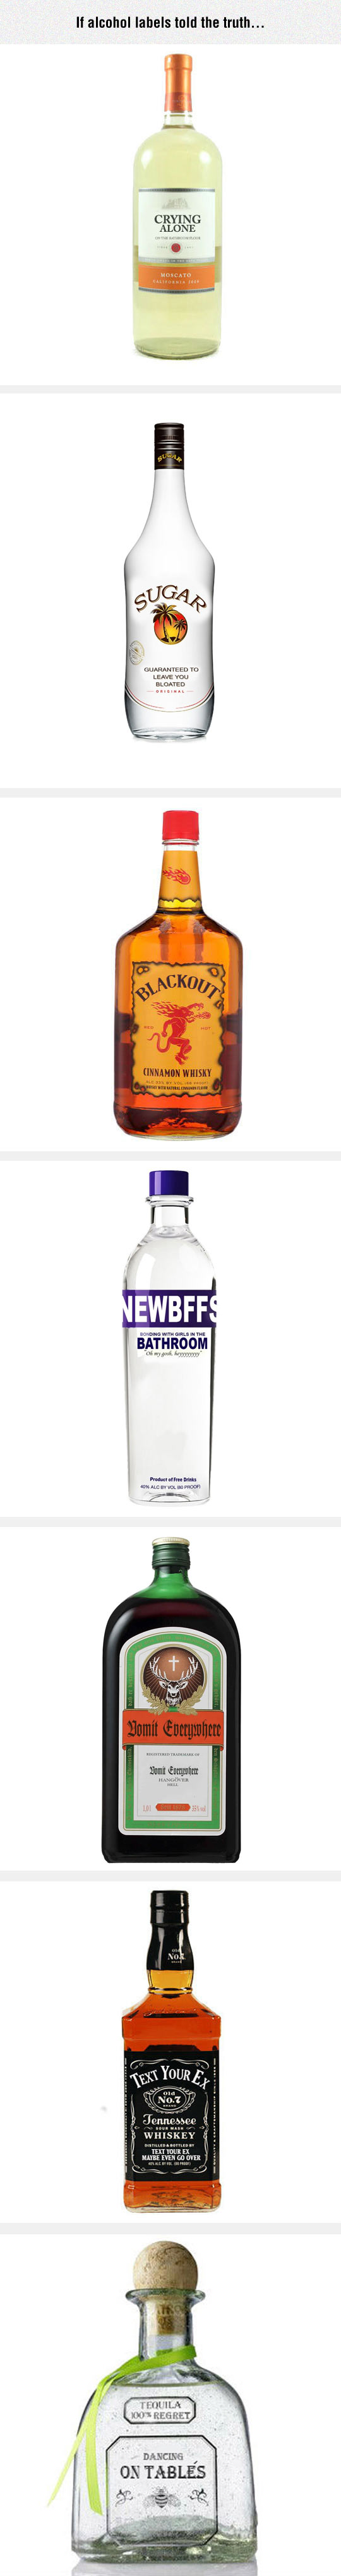 funny-alcohol-labels-told-truth